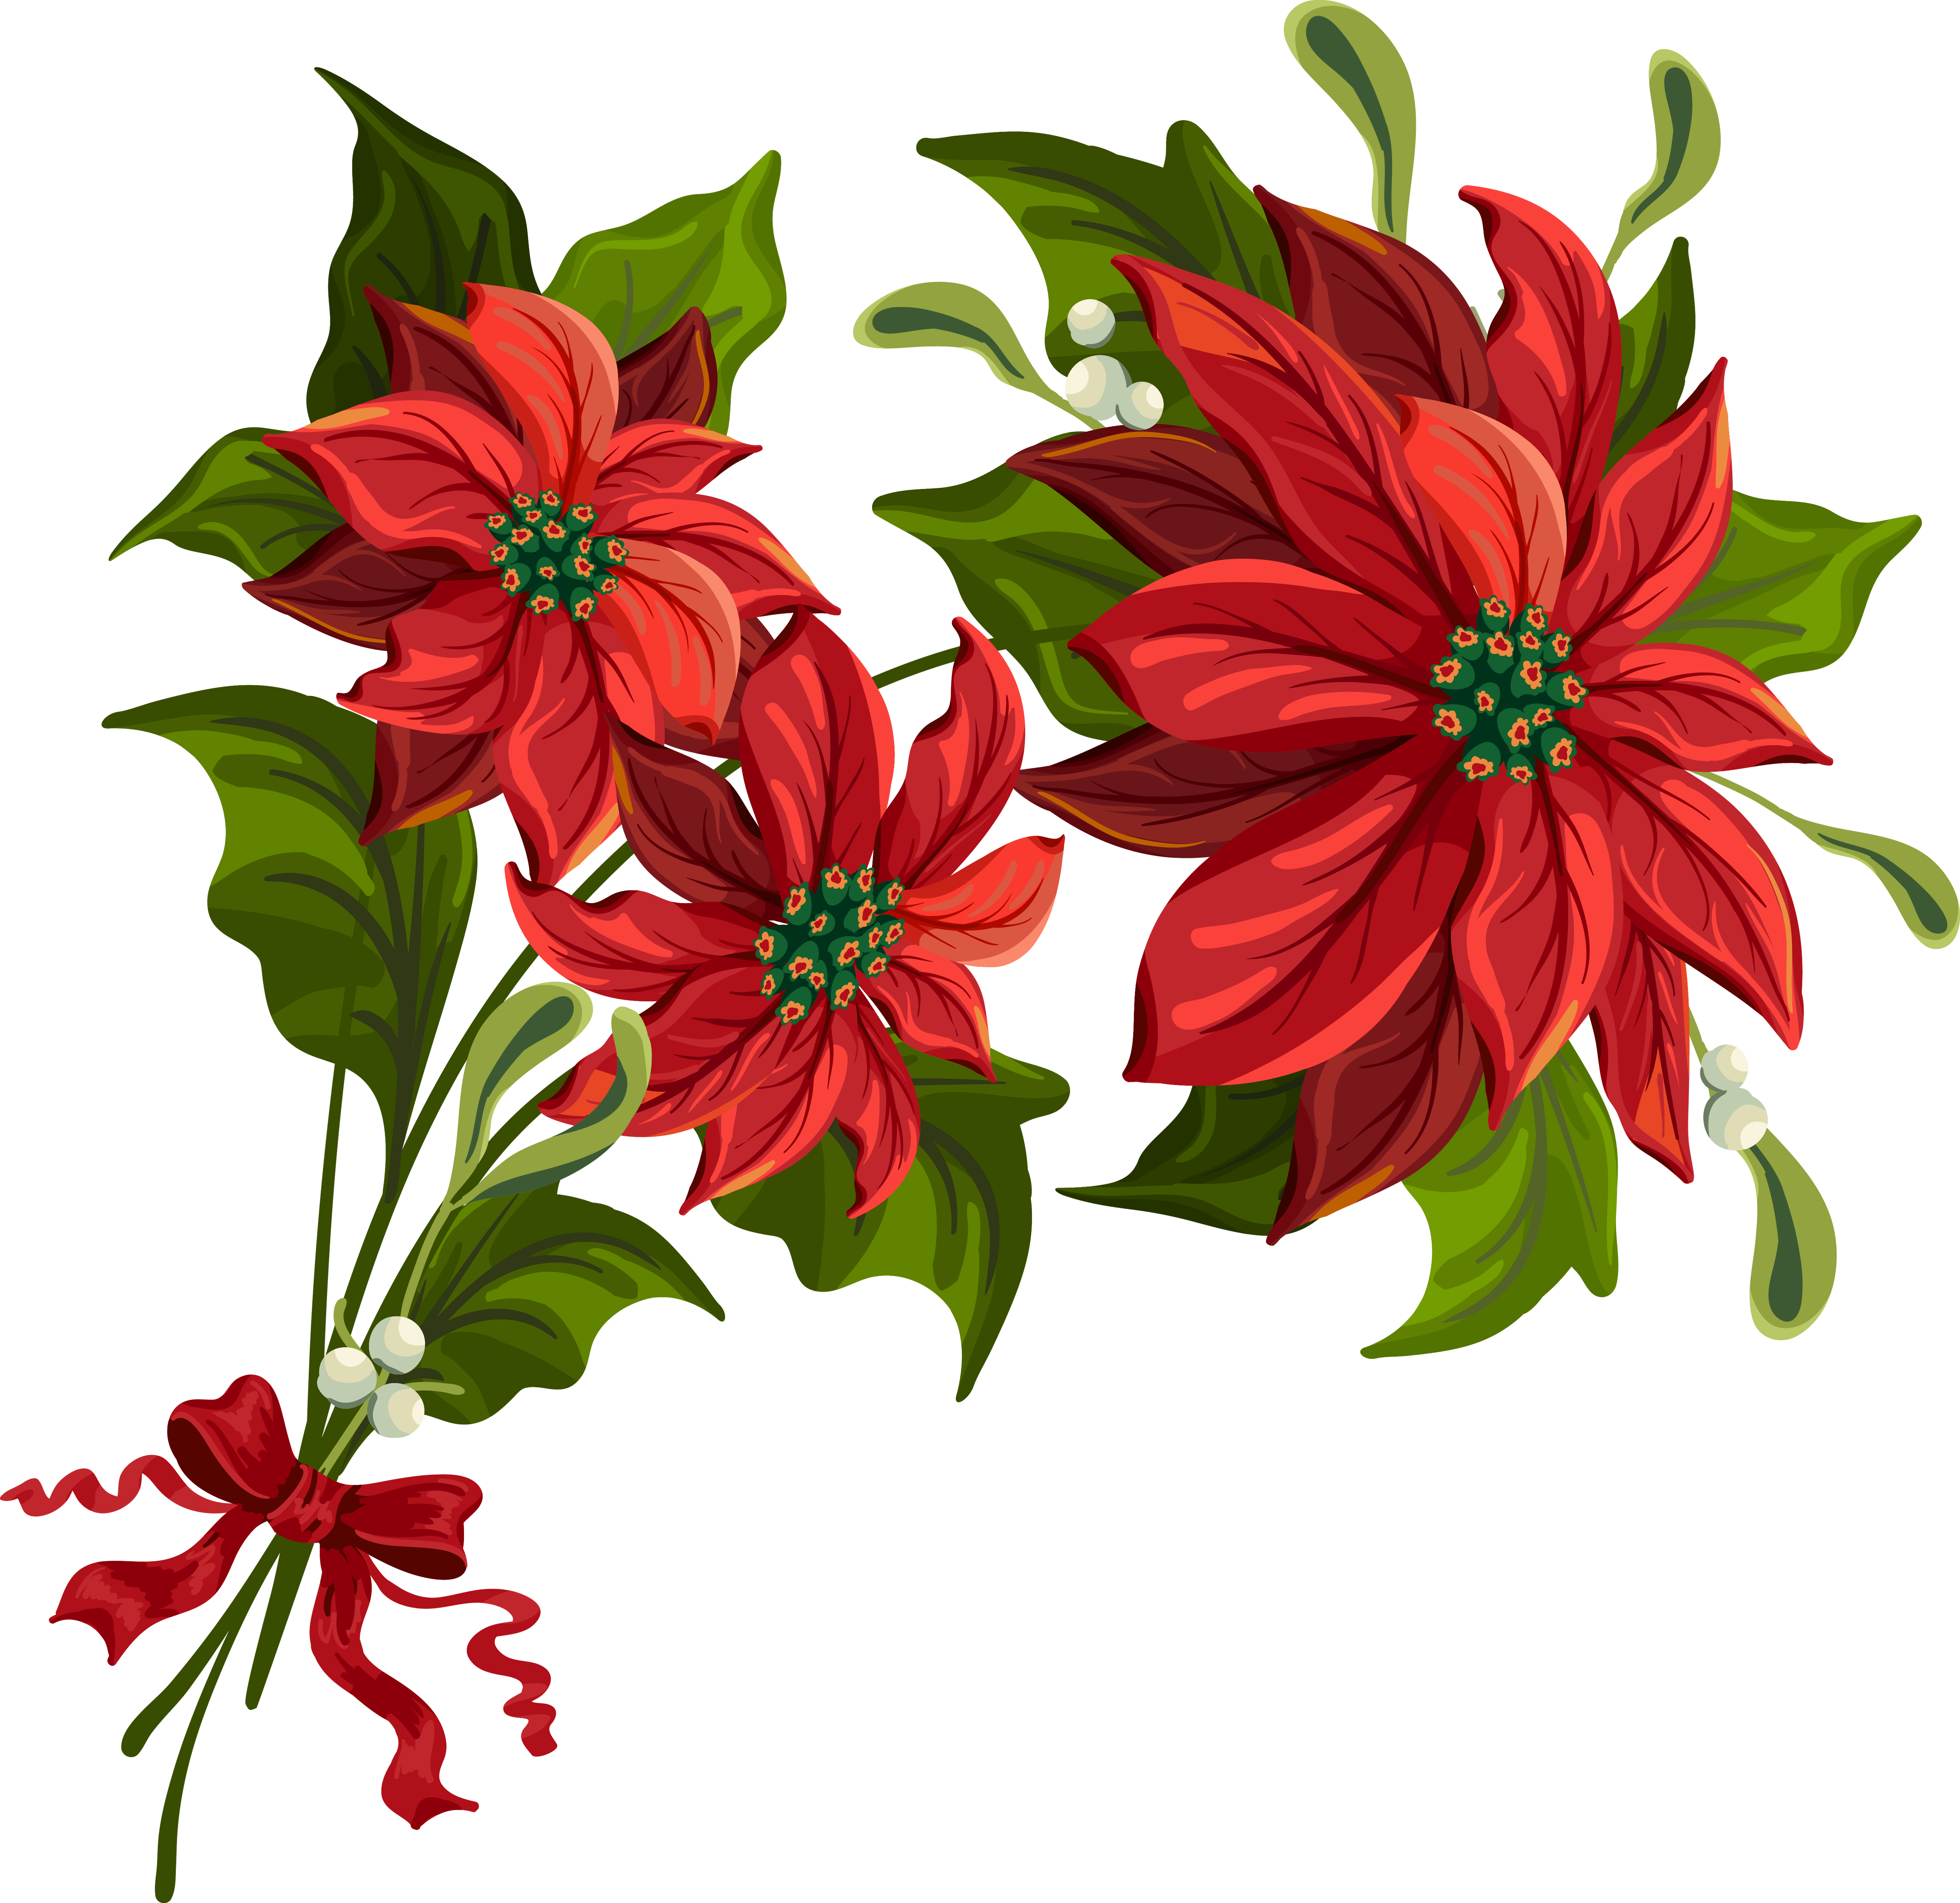 620 Christmas Png free clipart.